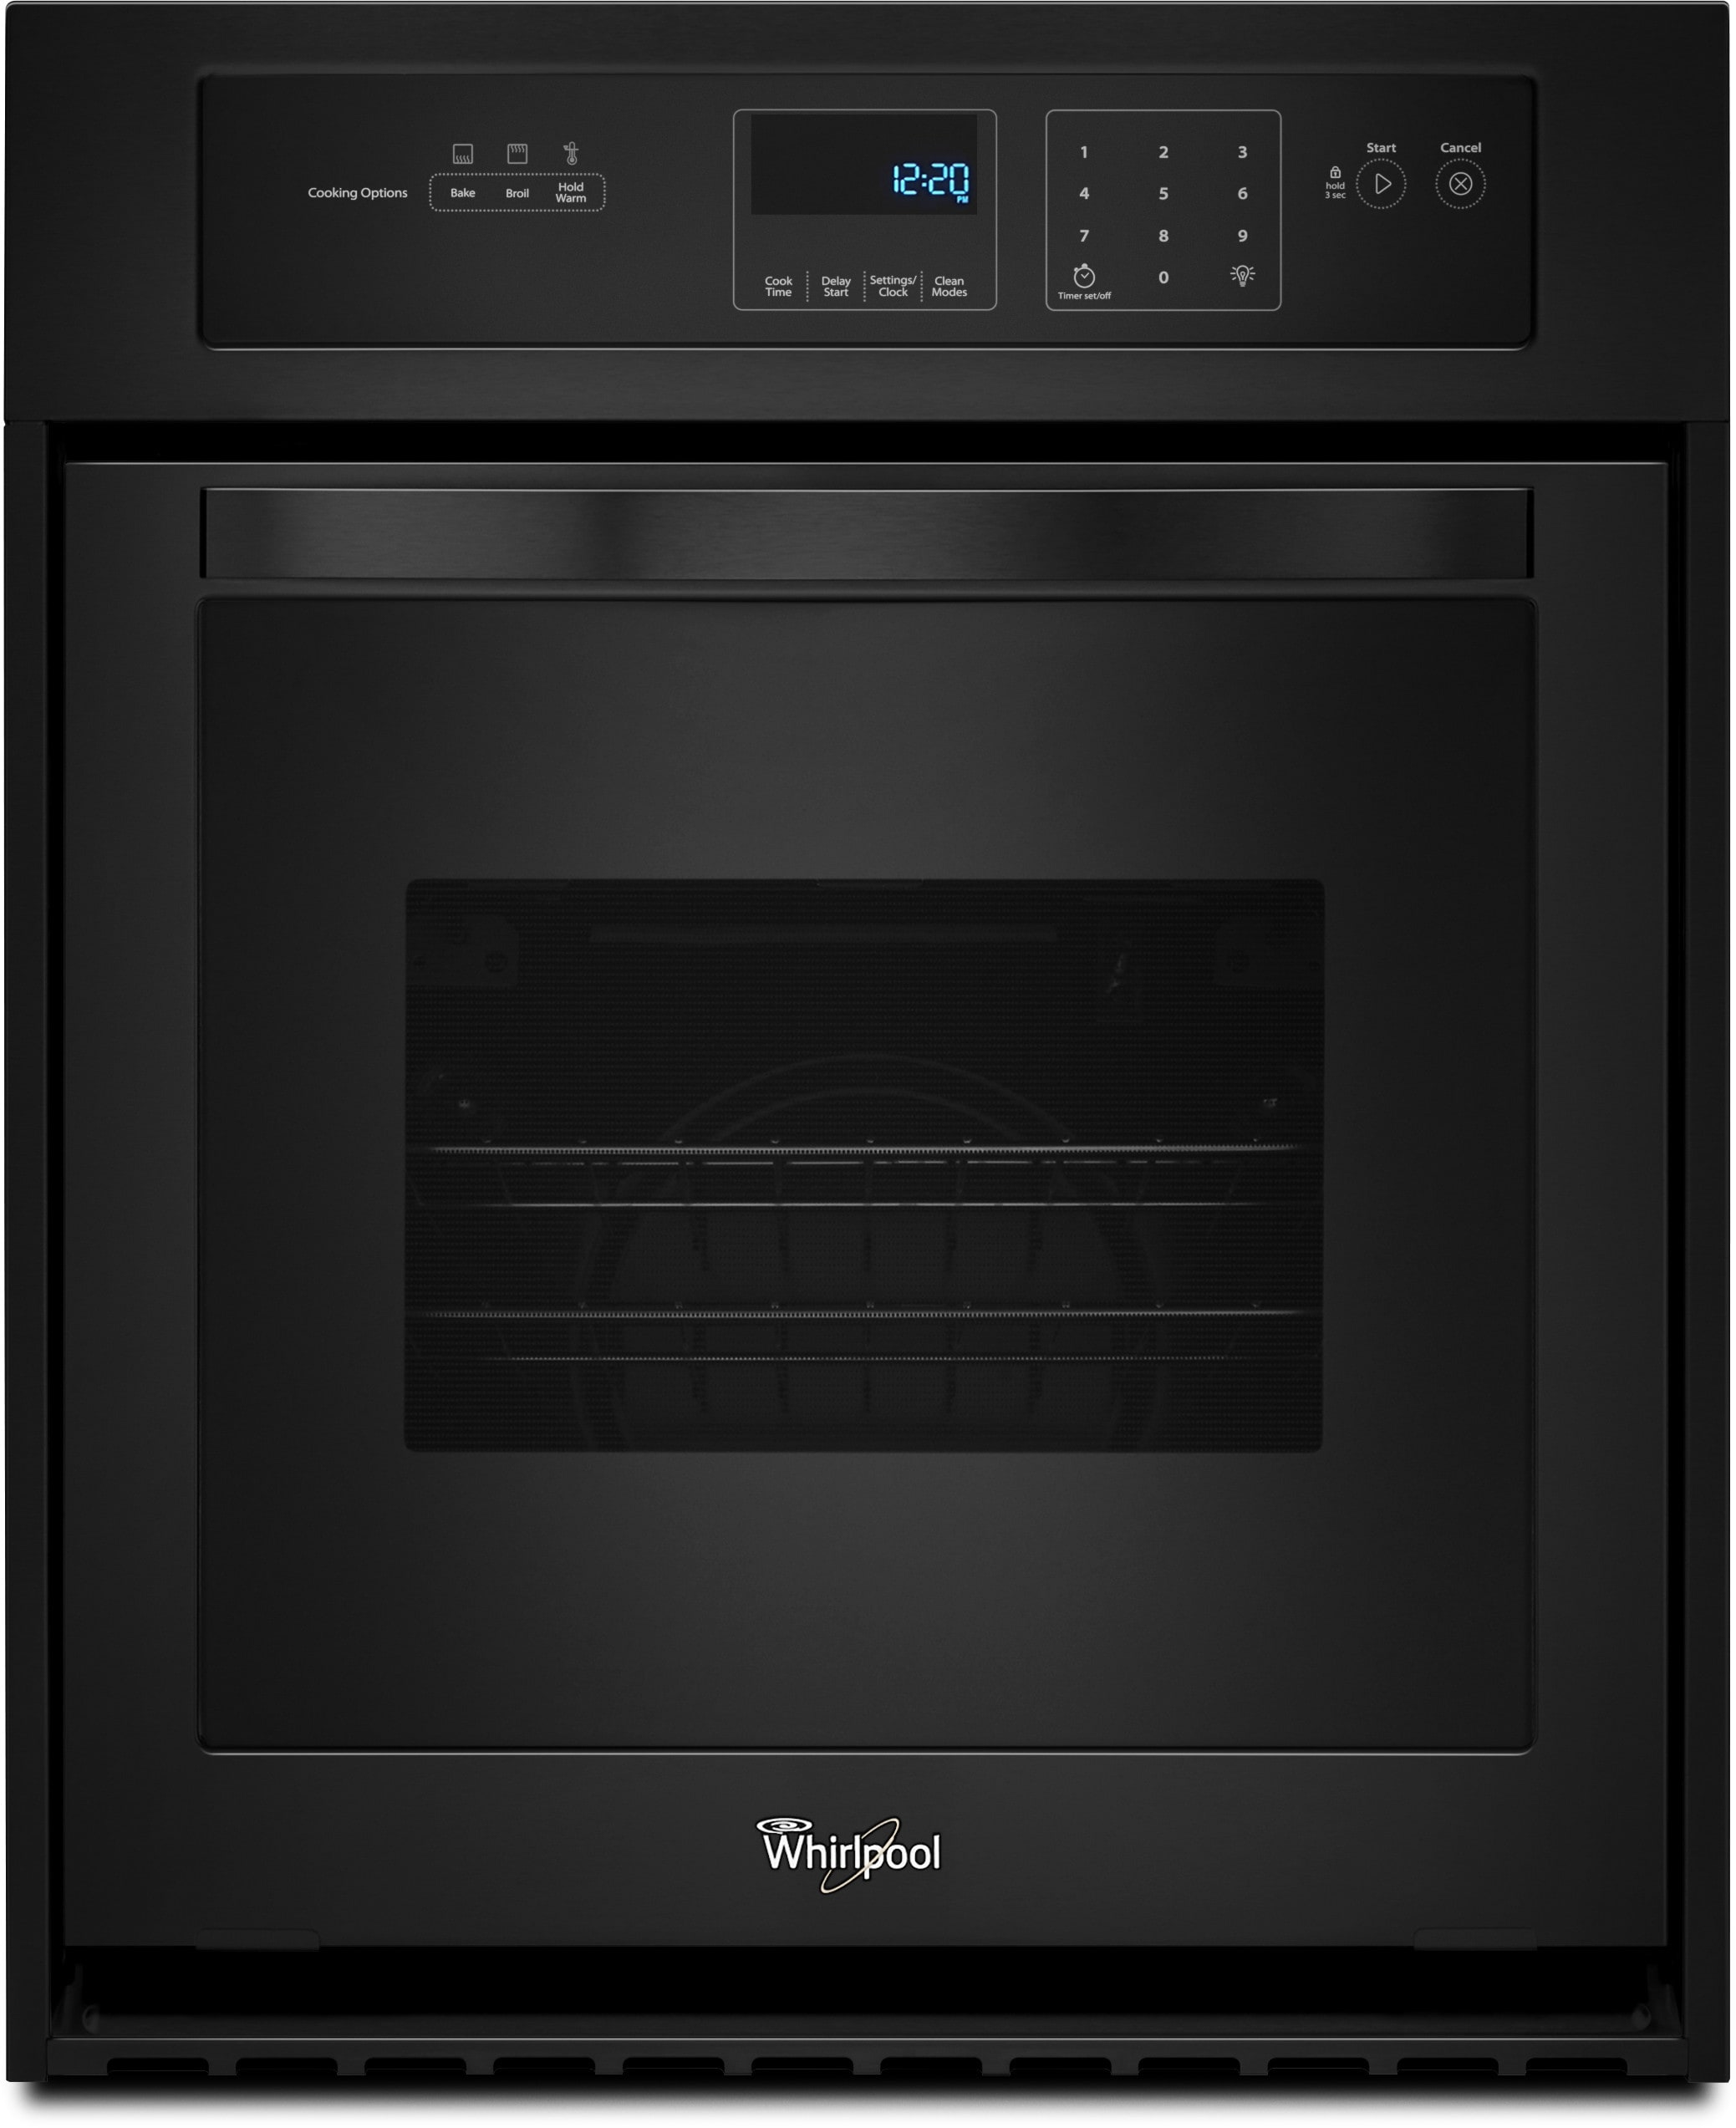 Whirlpool Wos51es4eb 24 Inch Single Electric Wall Oven